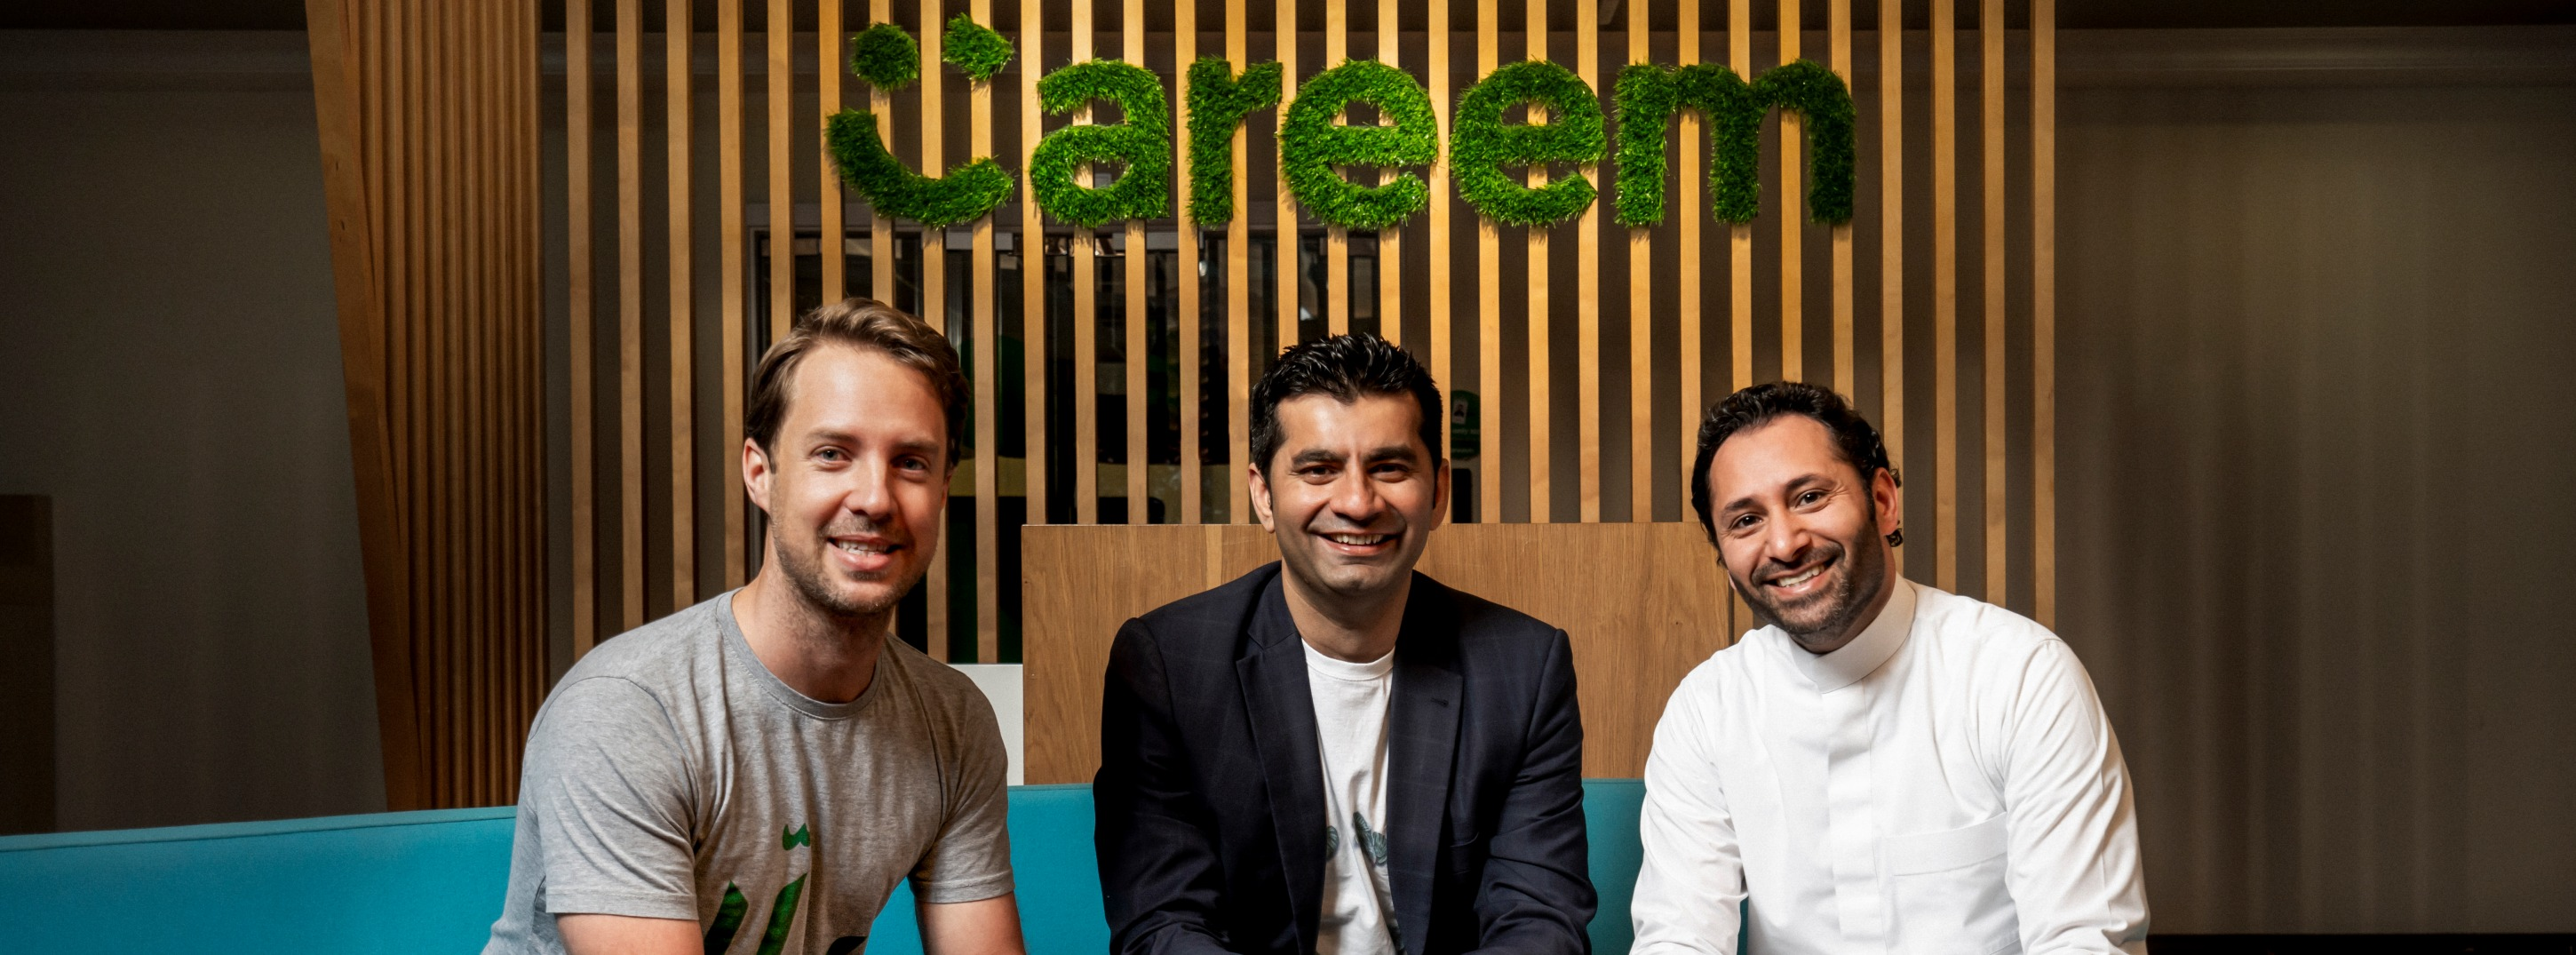 Careem joins Uber